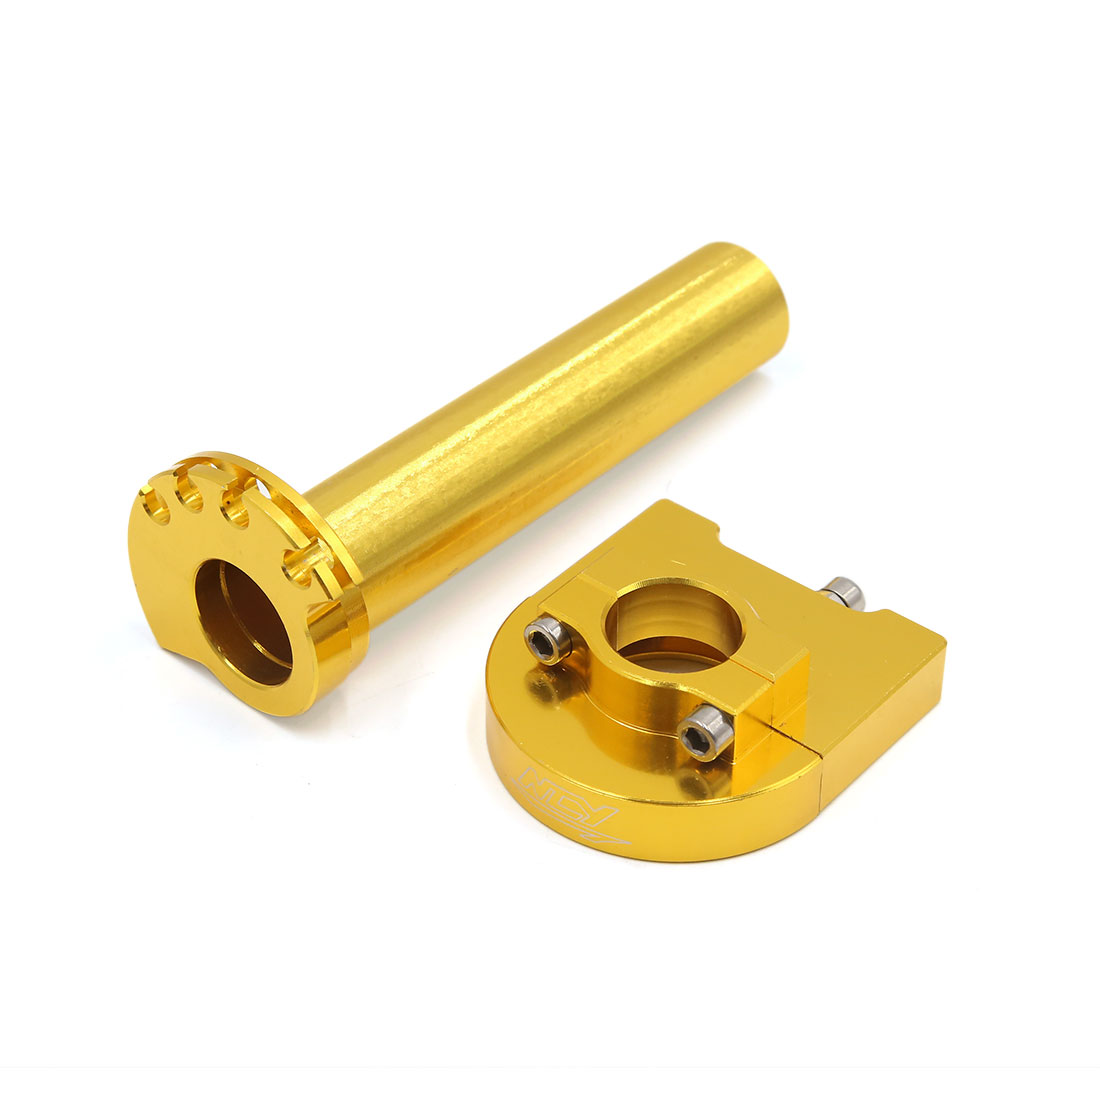 22mm Gold Tone Aluminum Alloy Handlebar Accelerator Hand Grip for Motorcycle